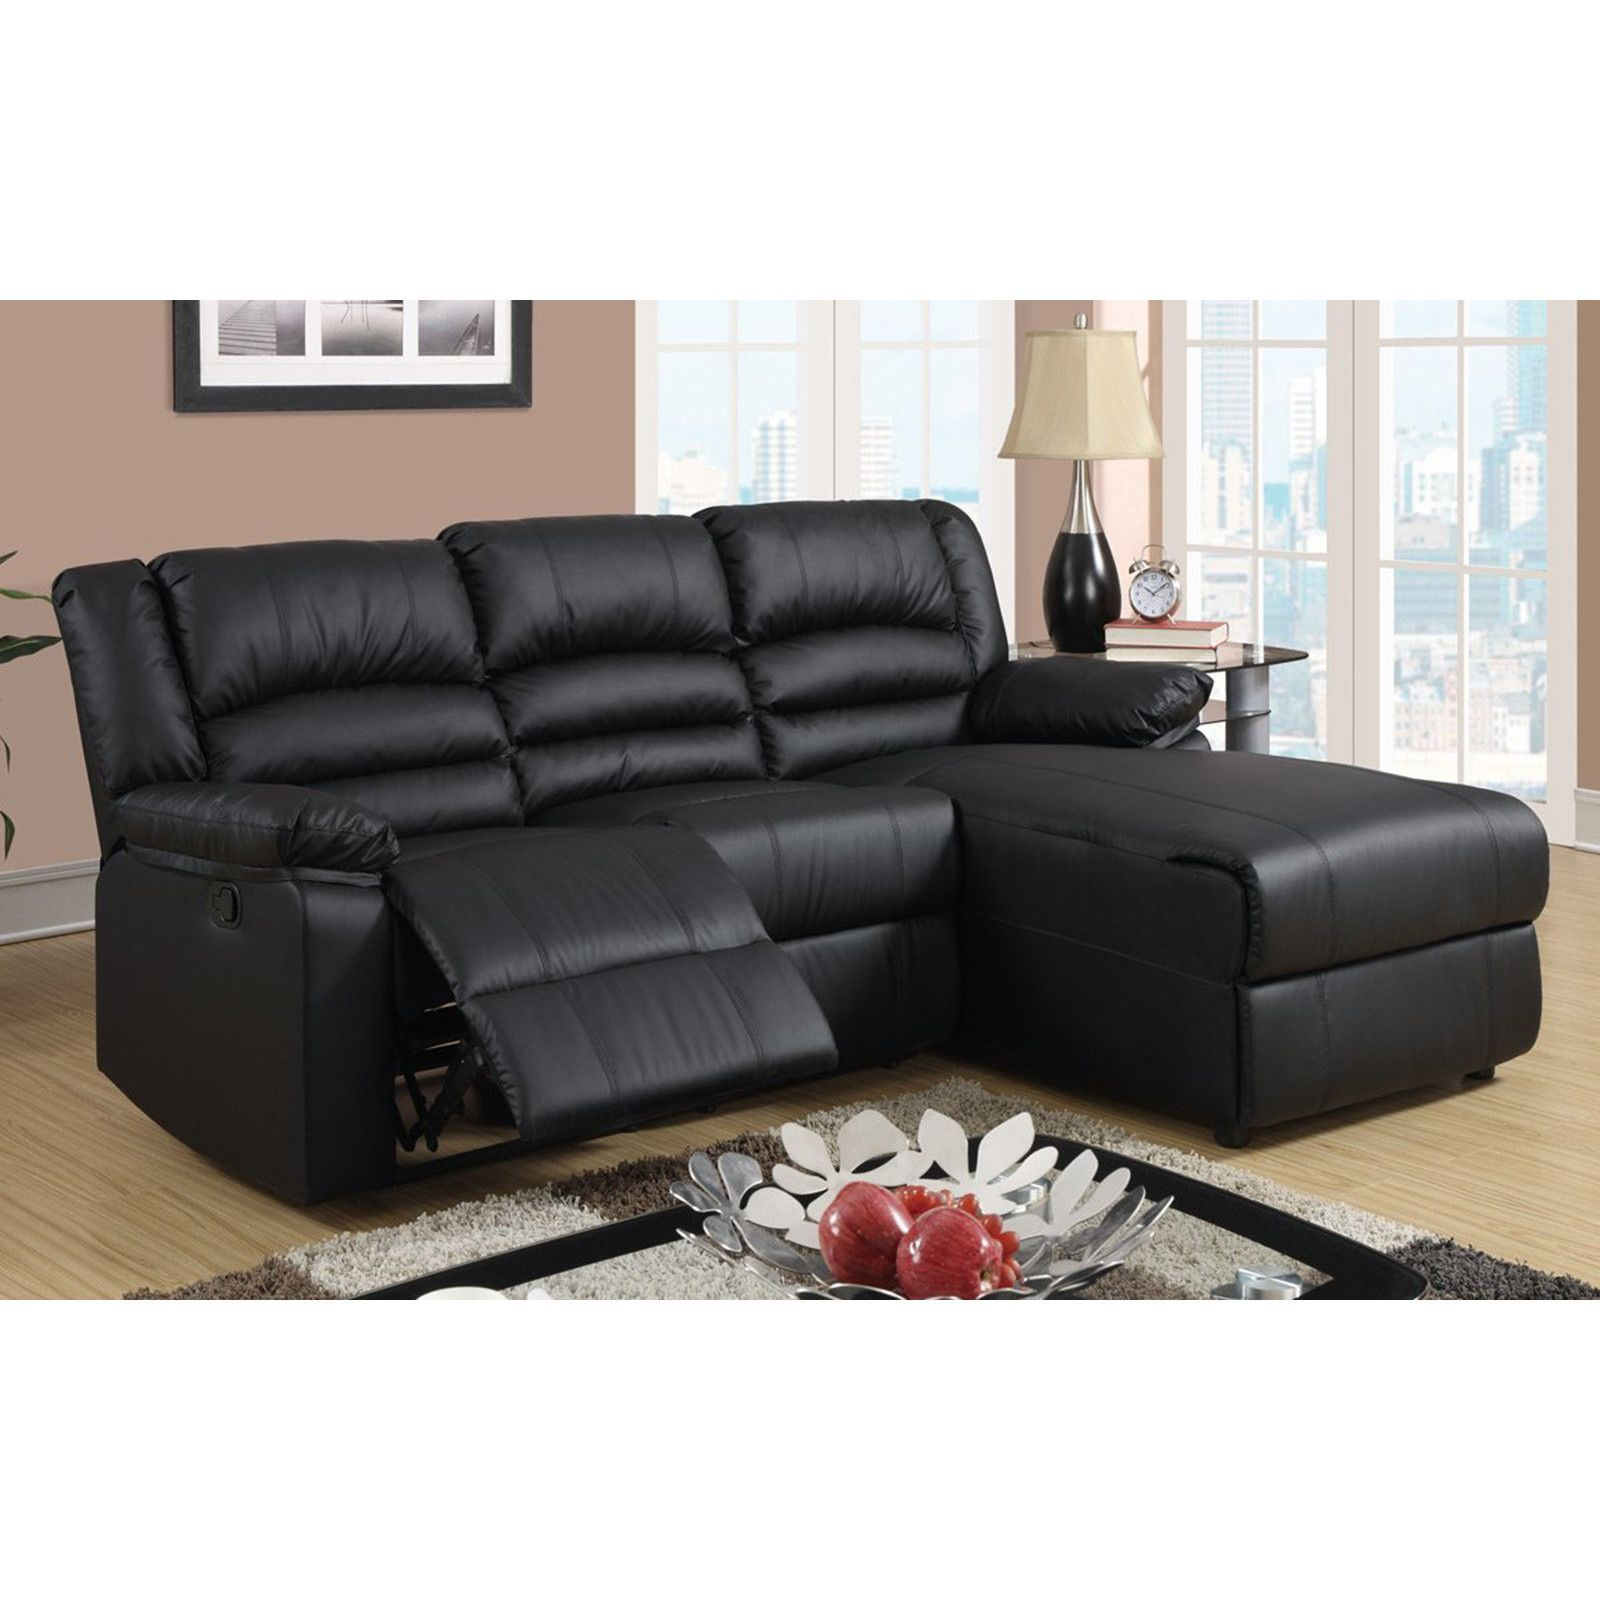 Leather Sofa With Chaise Madison Modern Small Space Sectional Reclining Sofa With